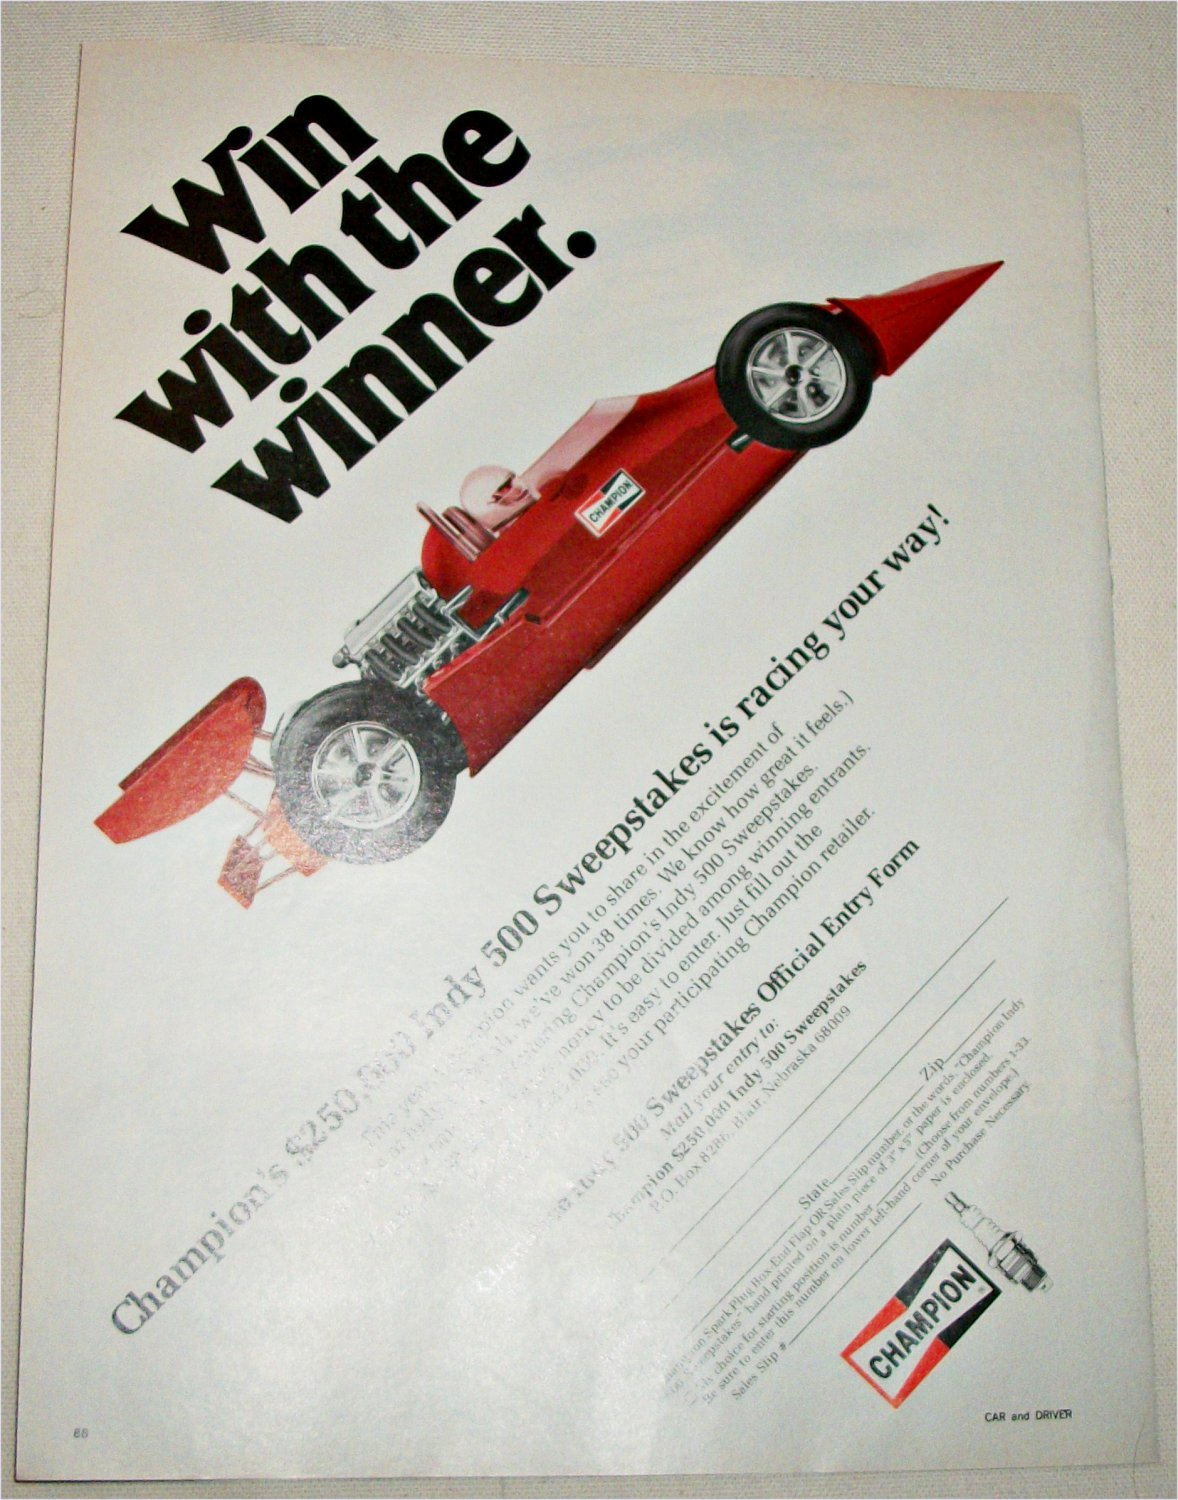 1978 Champion Spark Plugs Indy 500 Sweepstake ad